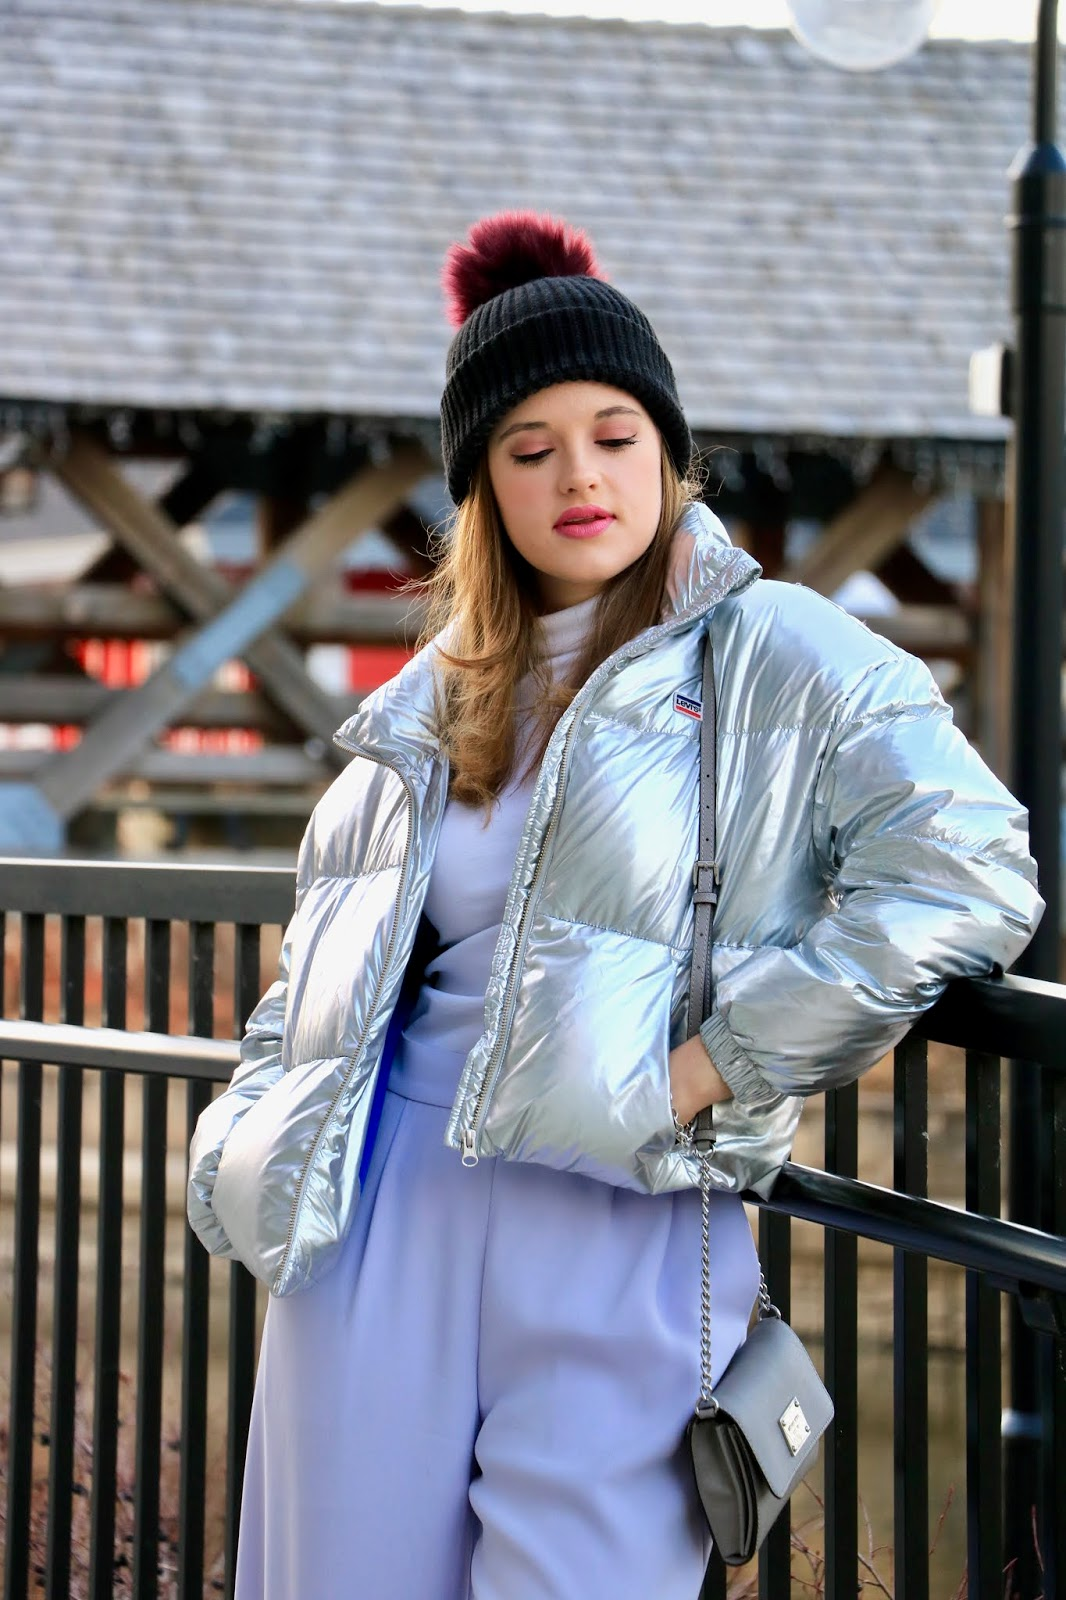 Nyc fashion blogger Kathleen Harper wearing a Levi's silver puffer coat.